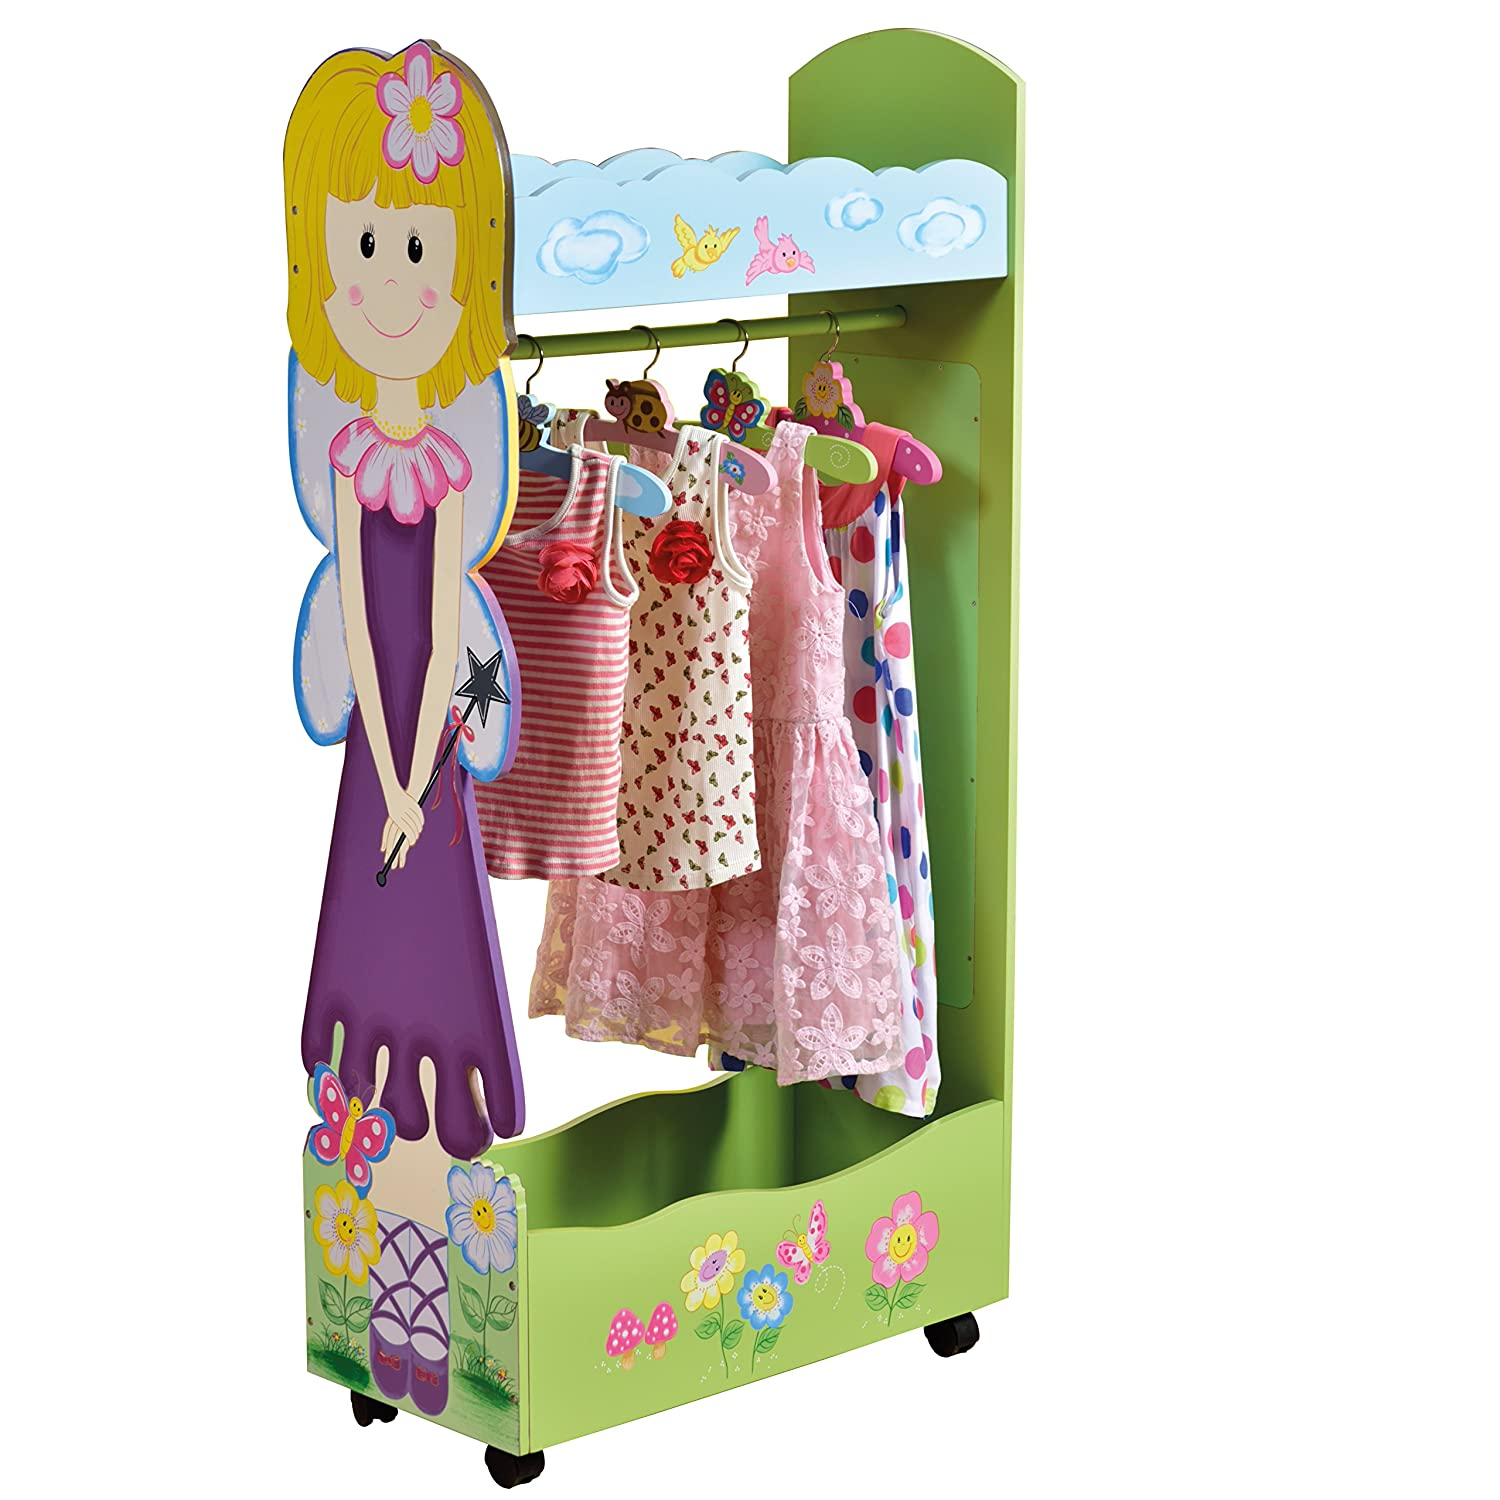 Amazon.com Liberty House Toys Fairy Dress Up Storage Centre with Hangers 63 x 28 x 120 cm Various Pinks by Liberty House Toys Appliances  sc 1 st  Amazon.com & Amazon.com: Liberty House Toys Fairy Dress Up Storage Centre with ...